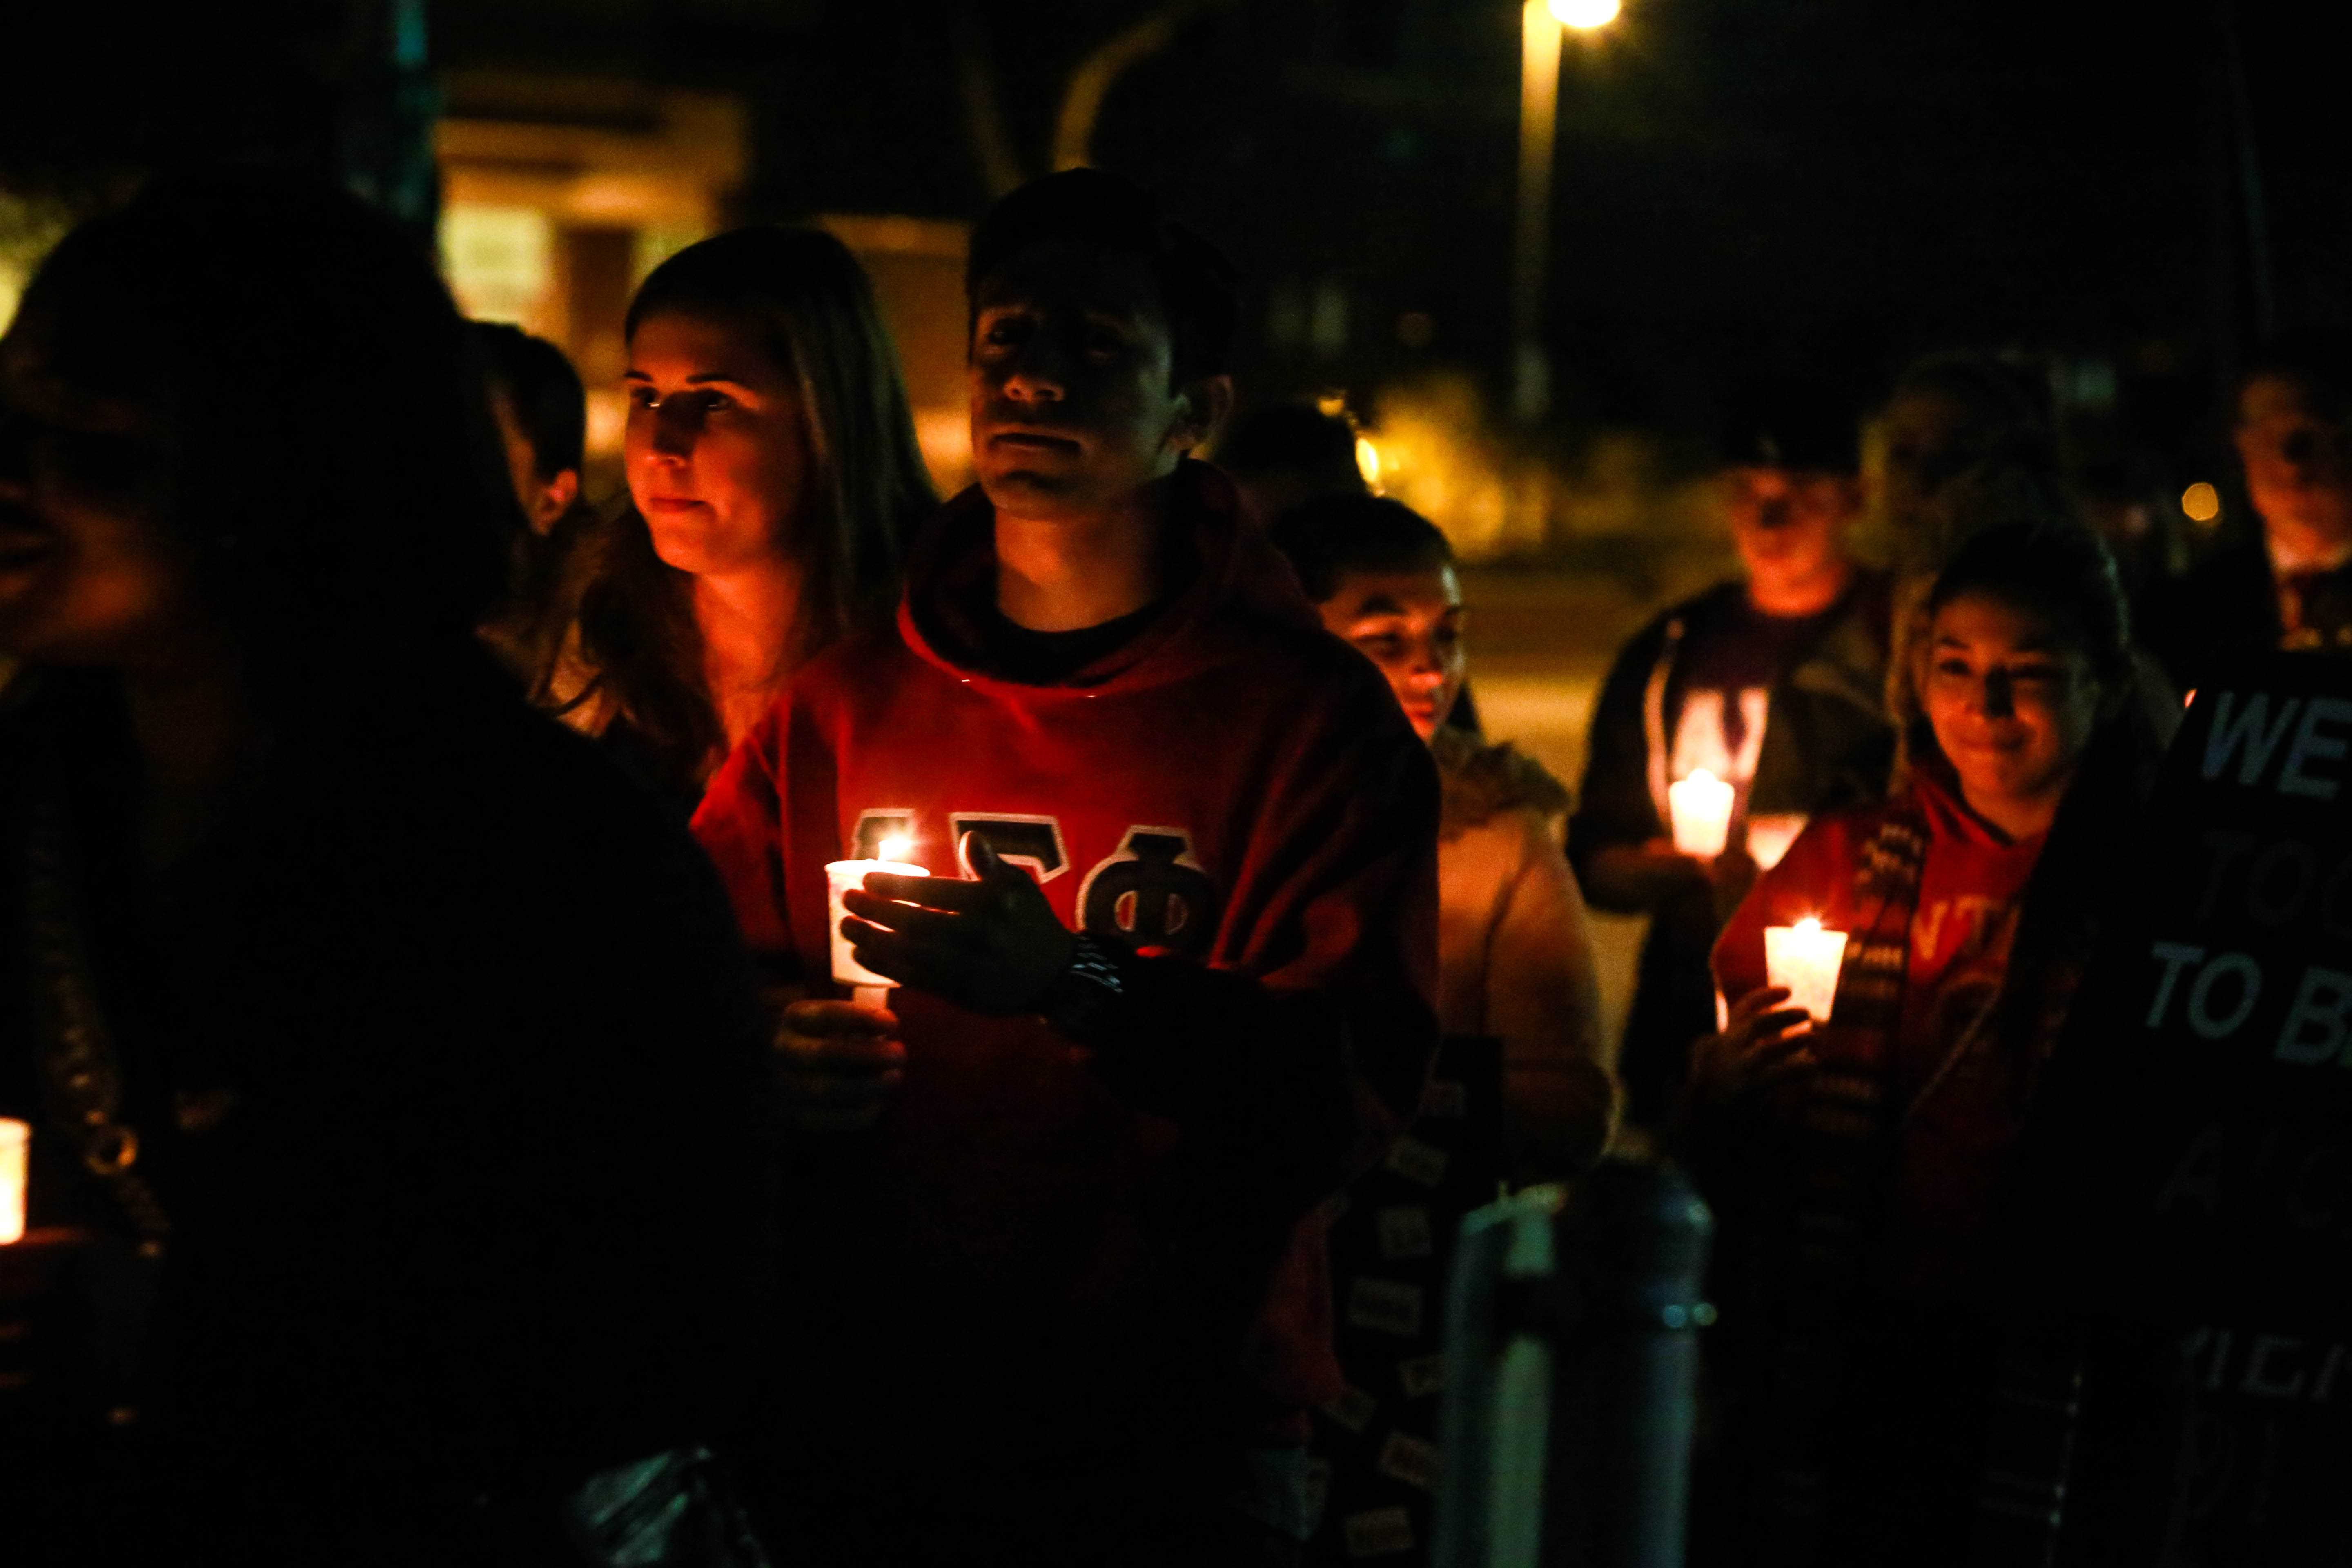 Students march from campus to the streets for Take Back the Night Thursday evening with candles. Photo credit: Emily Teague